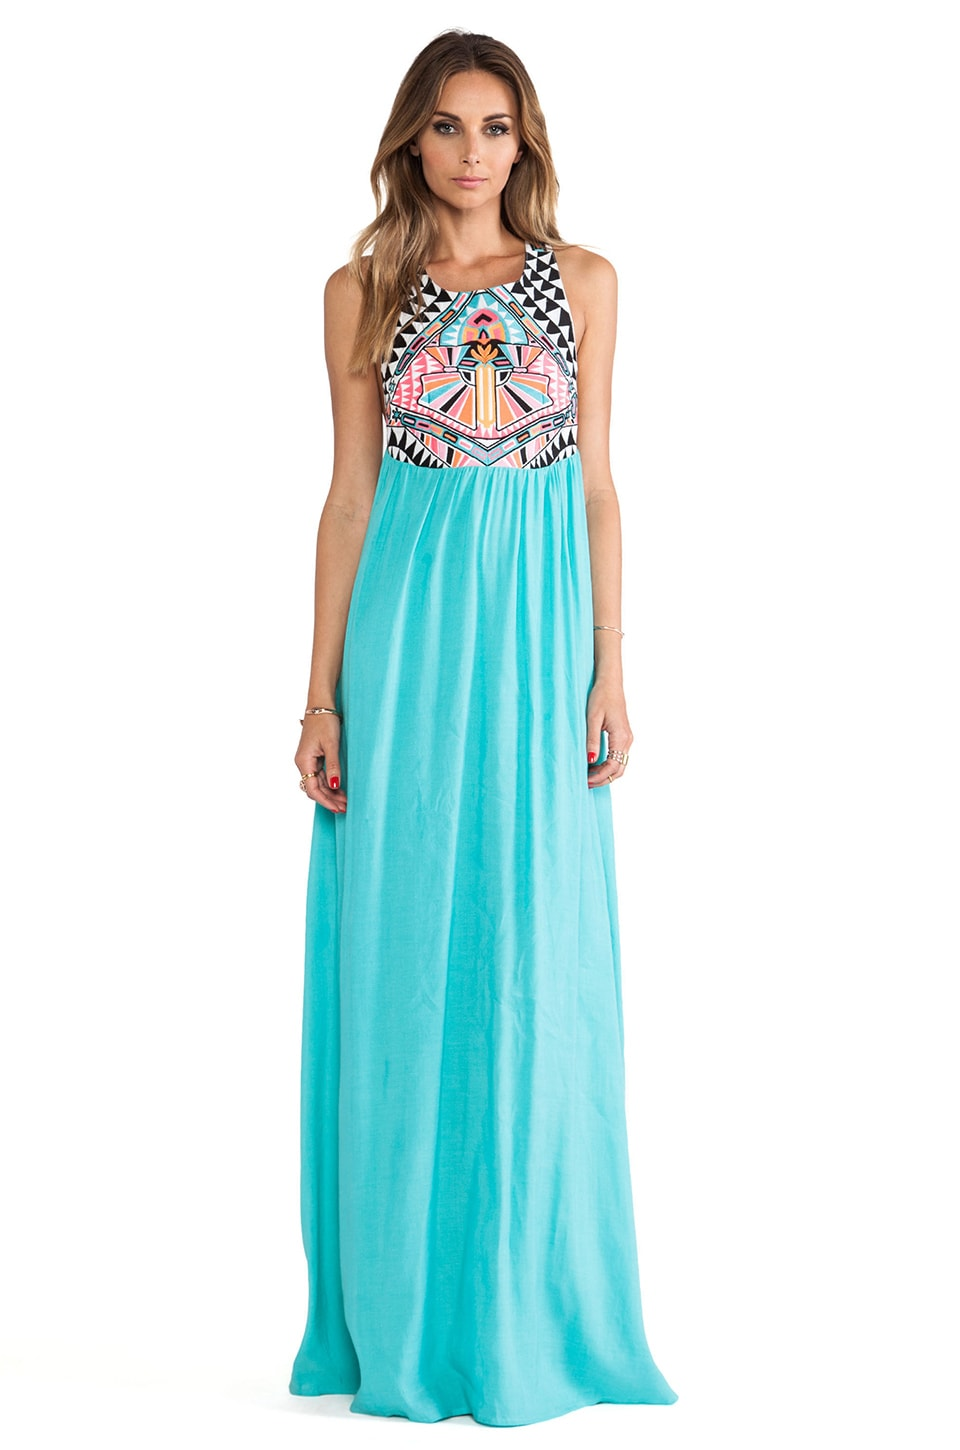 Mara Hoffman Embriodered Maxi Dress in Turquoise